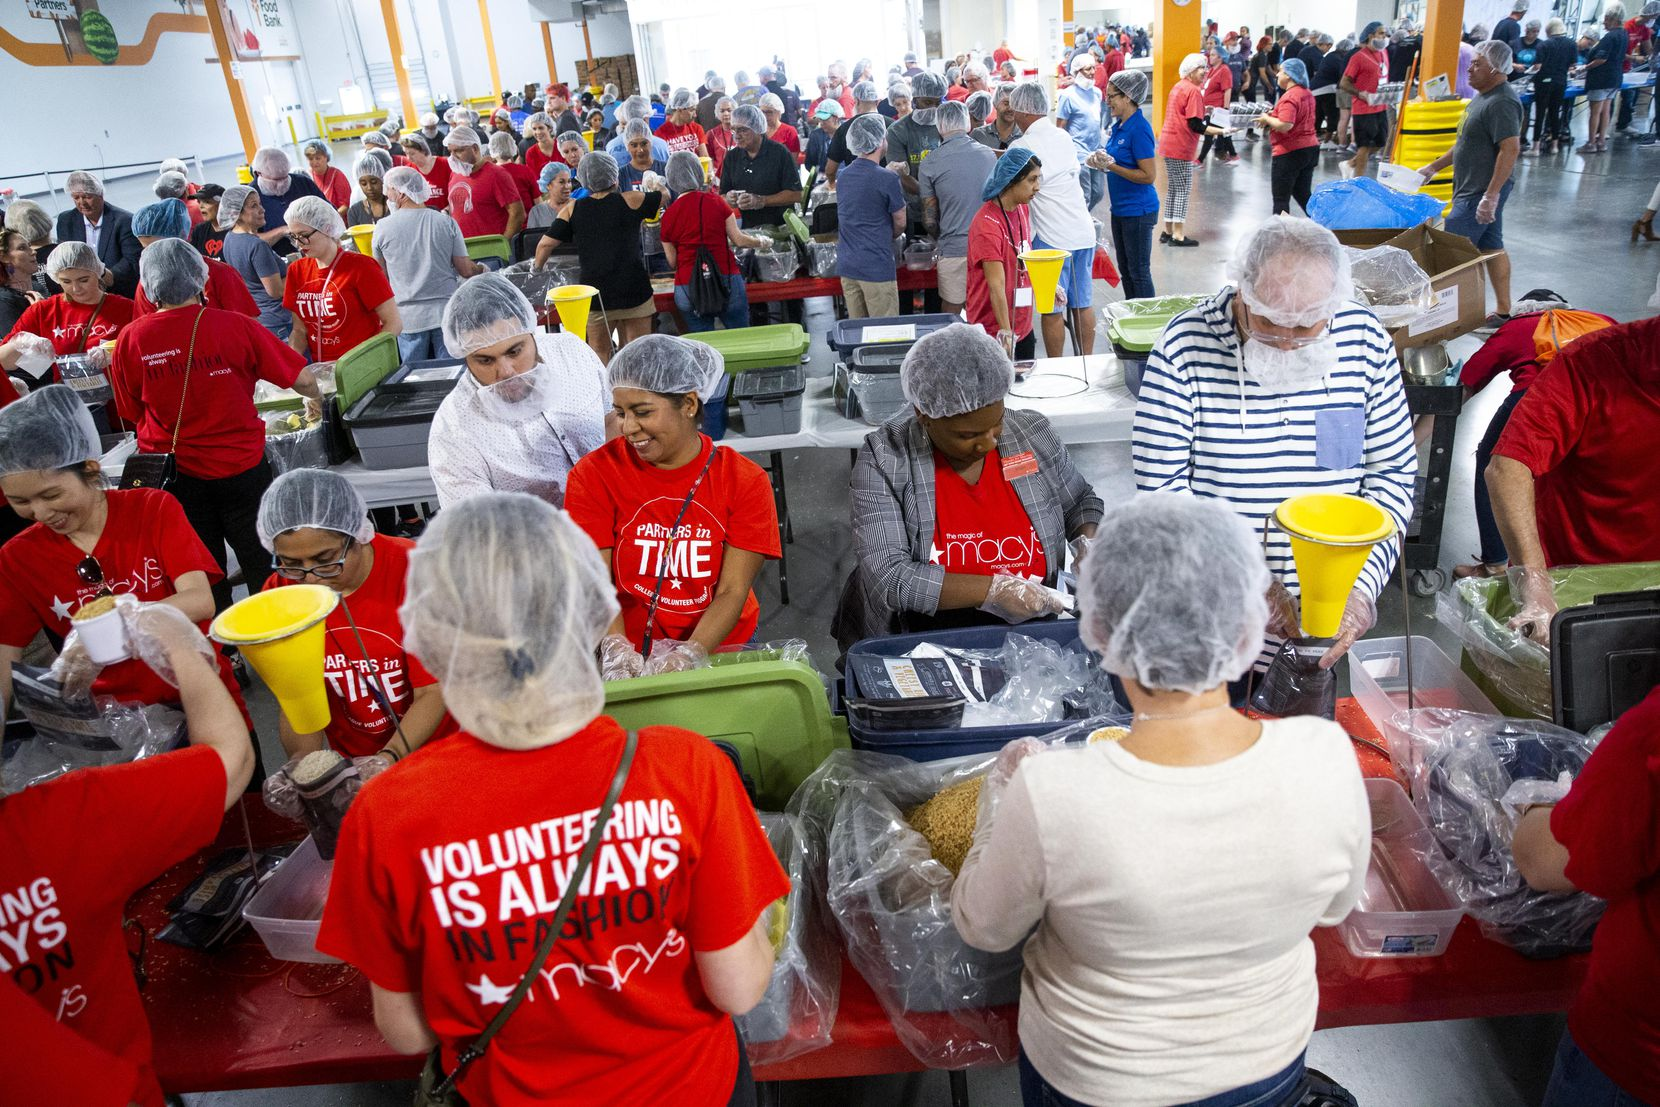 Volunteers from Macy's package food as they volunteer at North Texas Food Bank in Plano on Sept. 11, 2019. The volunteer work was part of Freedom Day, a community service day put on by Communities Foundation of Texas and 9/11 Day. (Shaban Athuman/Staff Photographer)